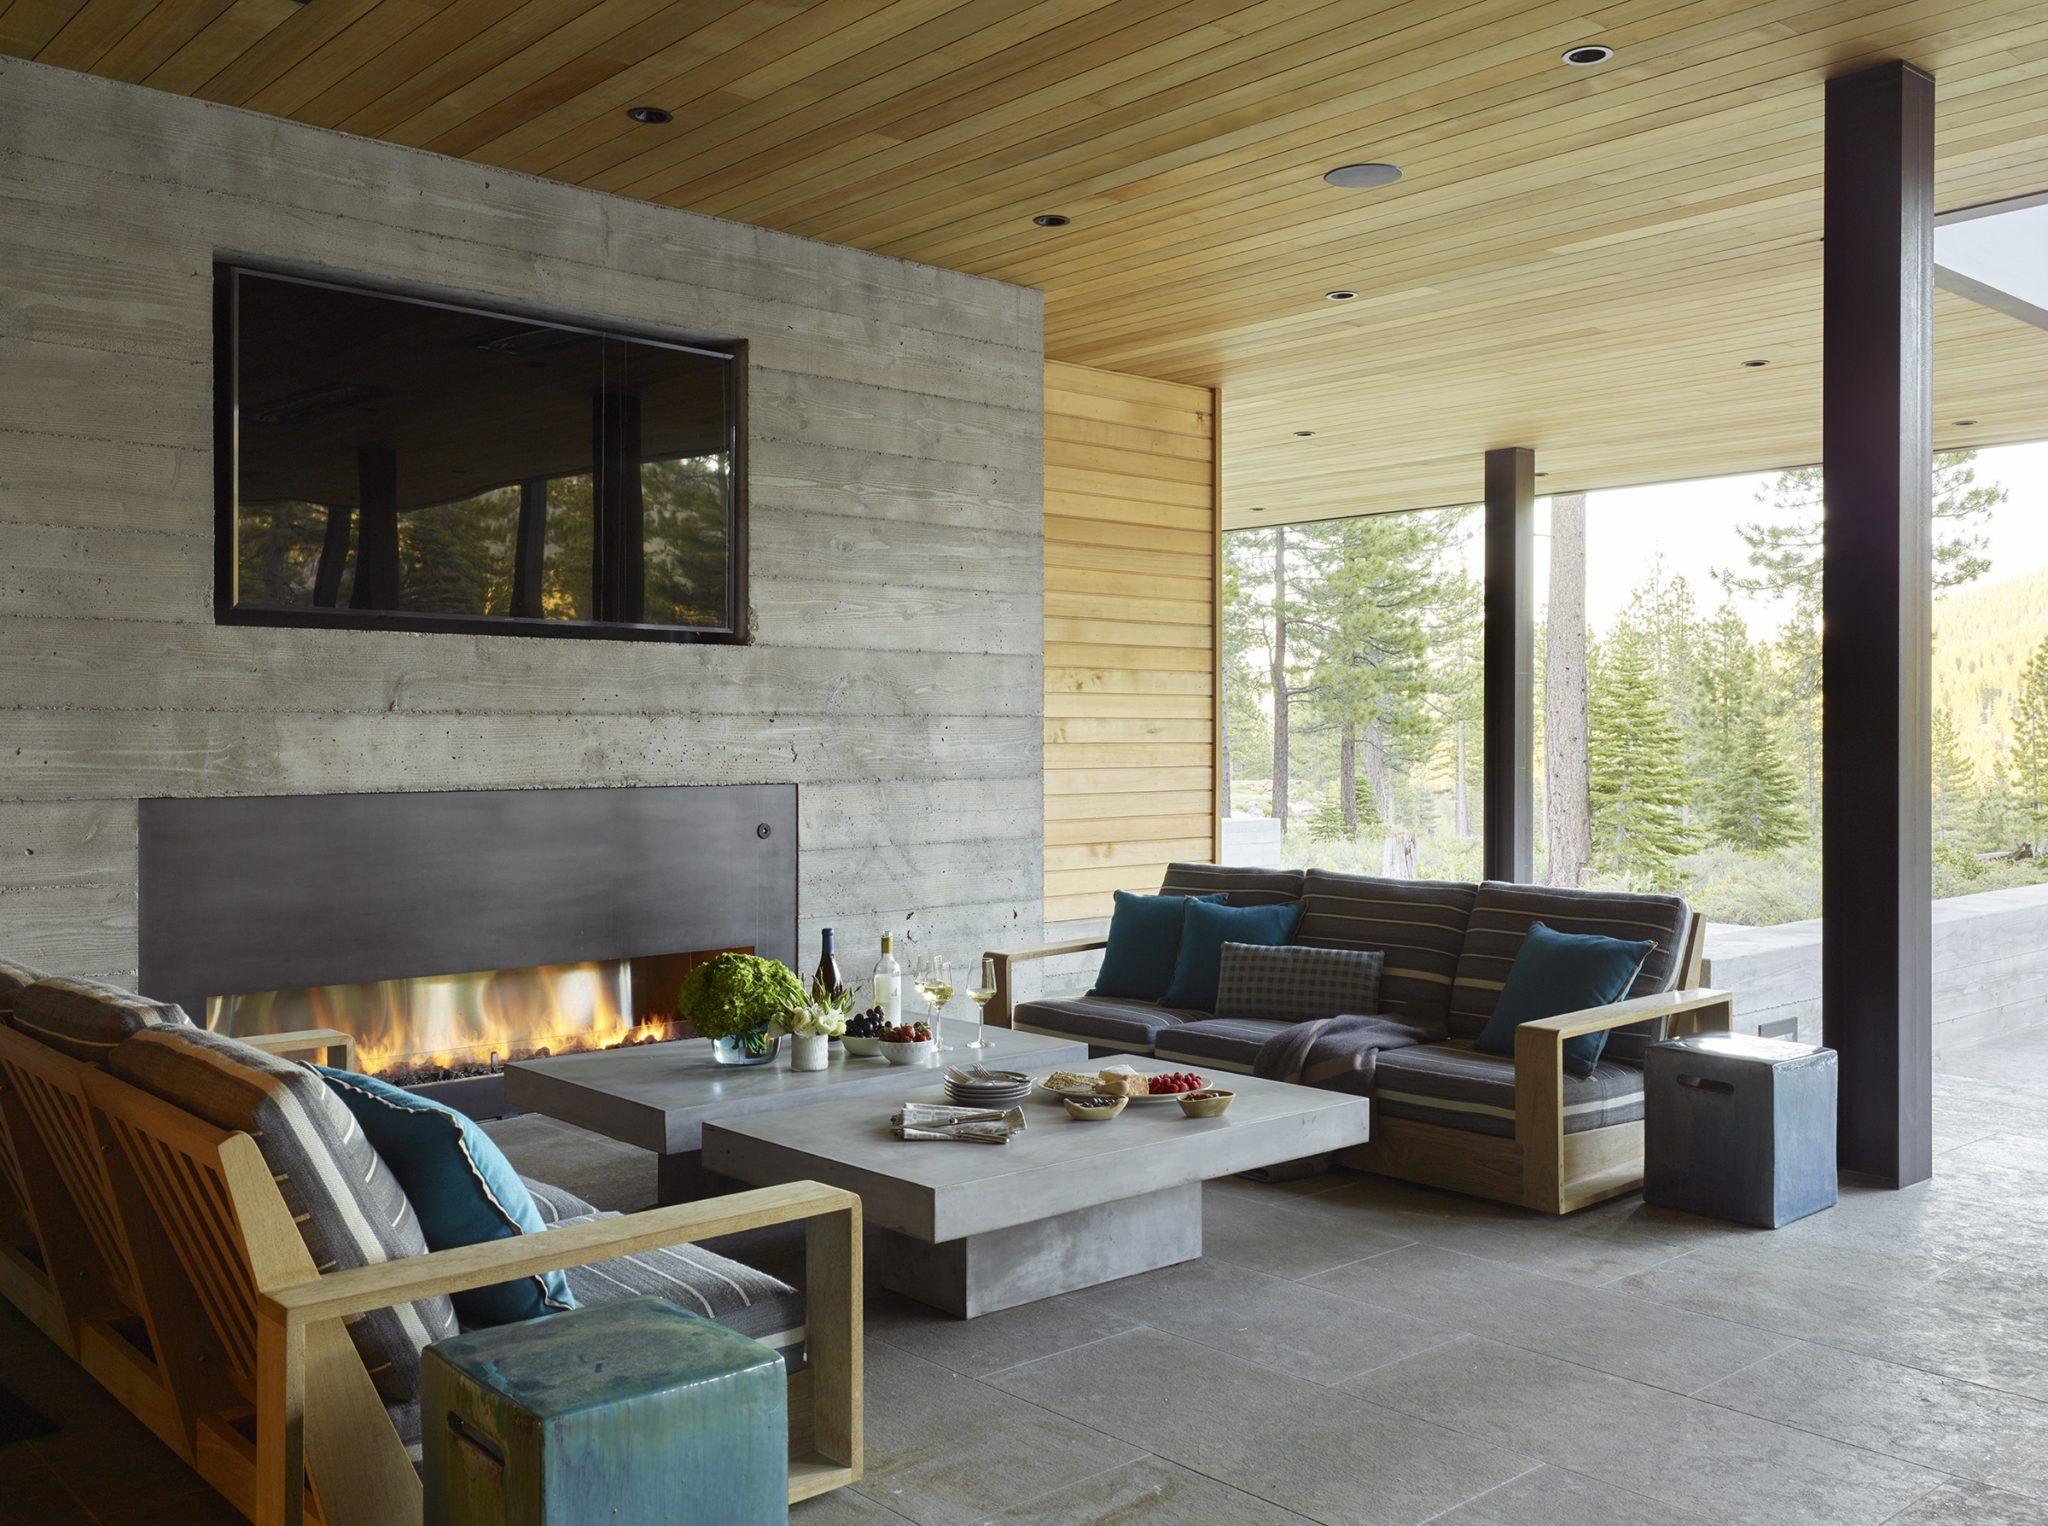 The Sutherland sofas in the outdoor lounge area are upholstered in a Perennials fabric; the cocktail table is by Teak Warehouse, and the side tables are by Crate &Barrel.